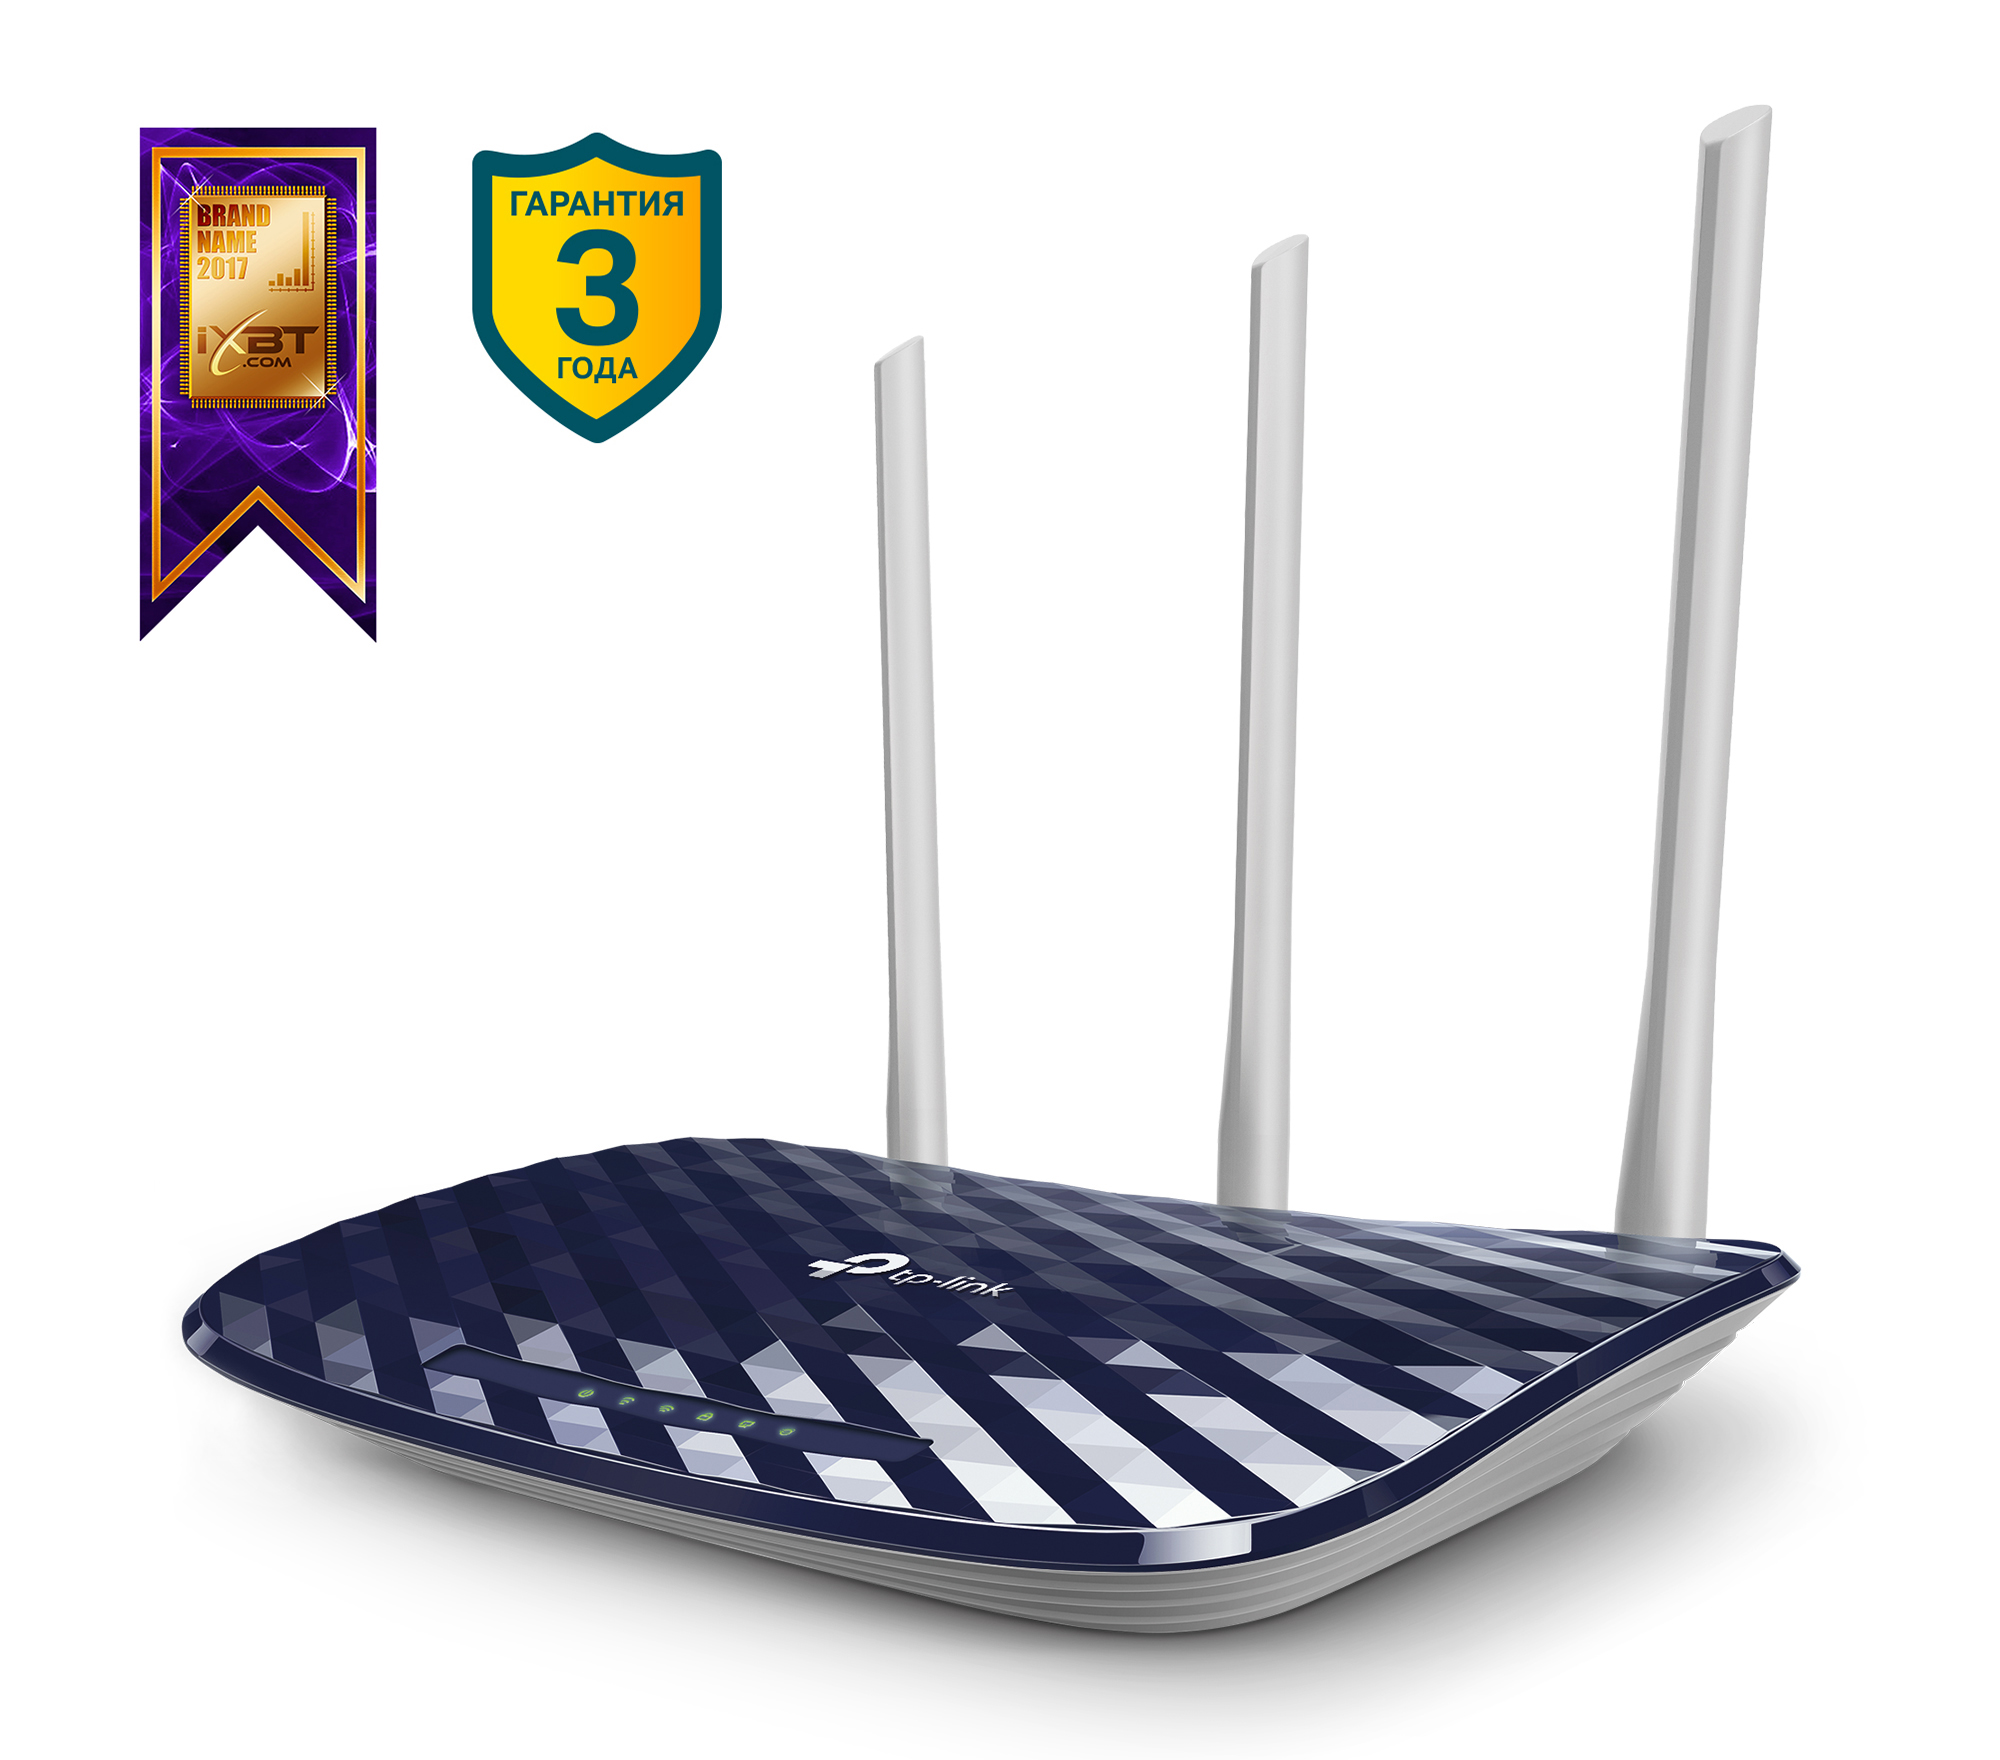 Маршрутизатор TP-LINK Archer C20(RU) AC750 Беспроводной двухдиапазонный маршрутизатор carbide cnc router bits 1 2 1 3 8 inch wood cutter end mill high quality woodworking engraving tool milling cutter